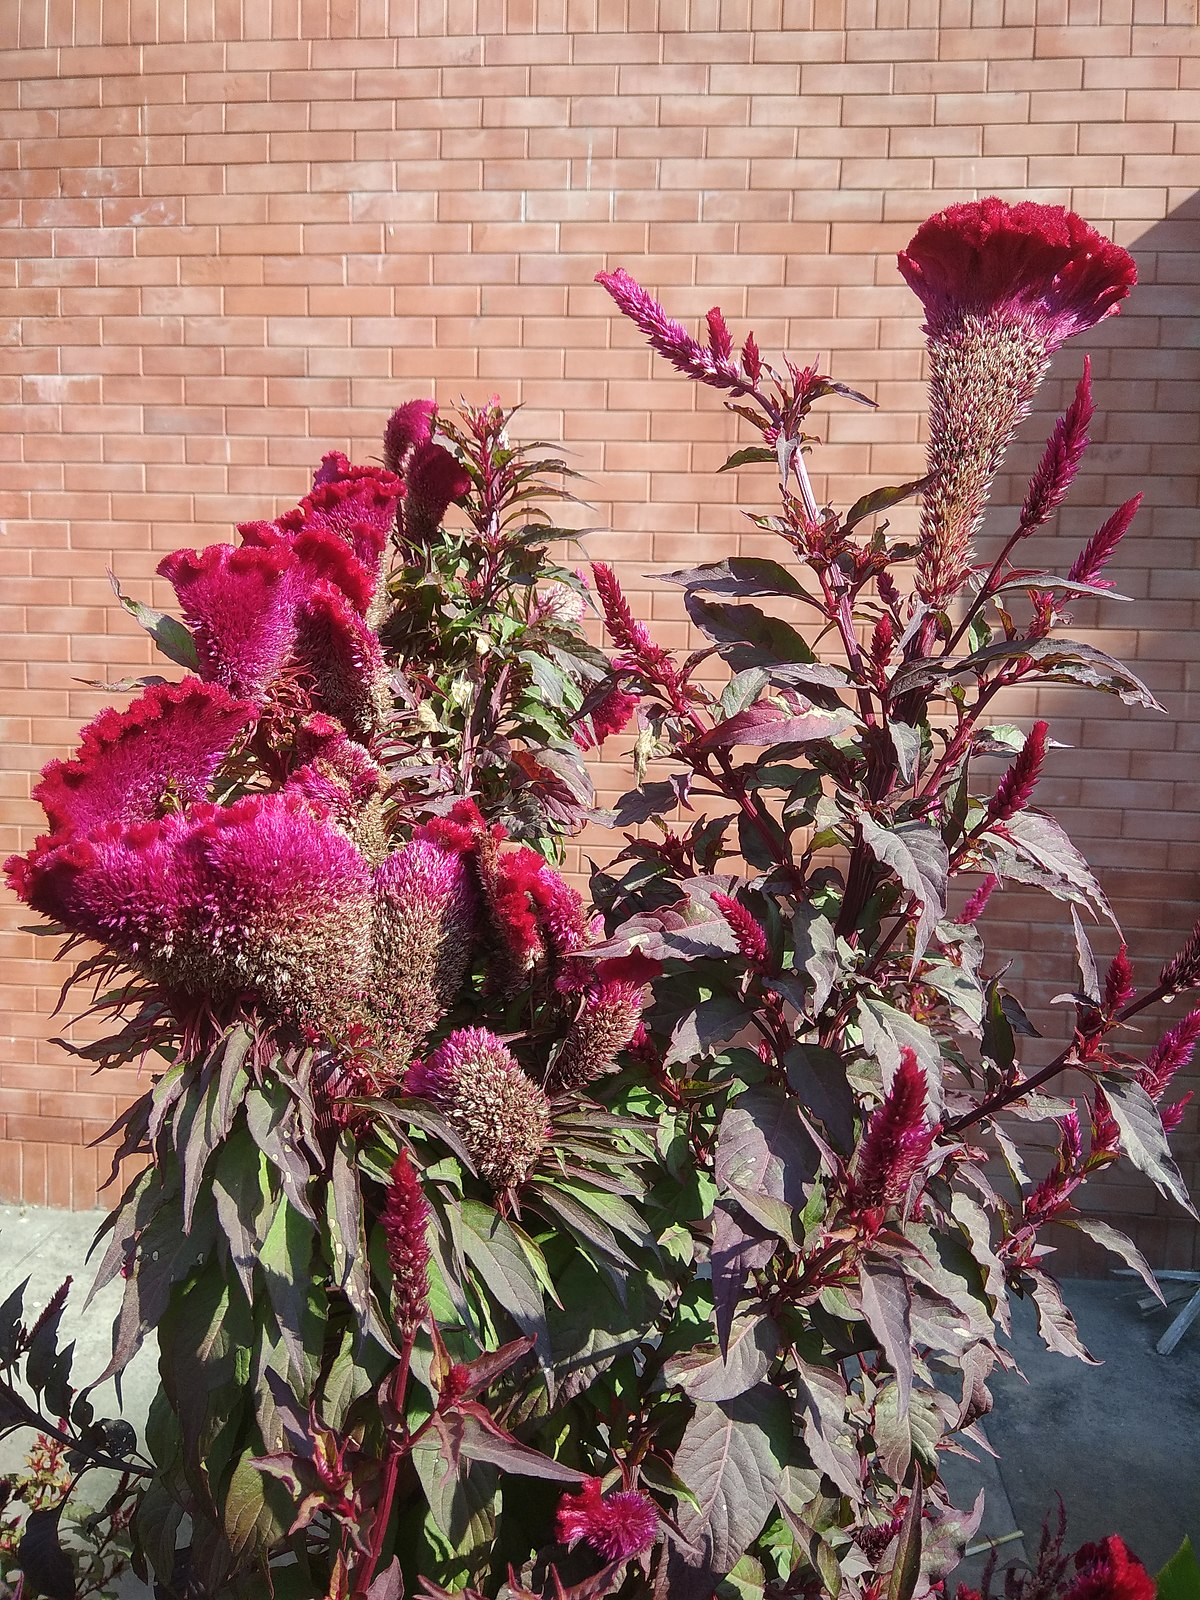 Make The Cut >> Celosia cristata - Wikipedia